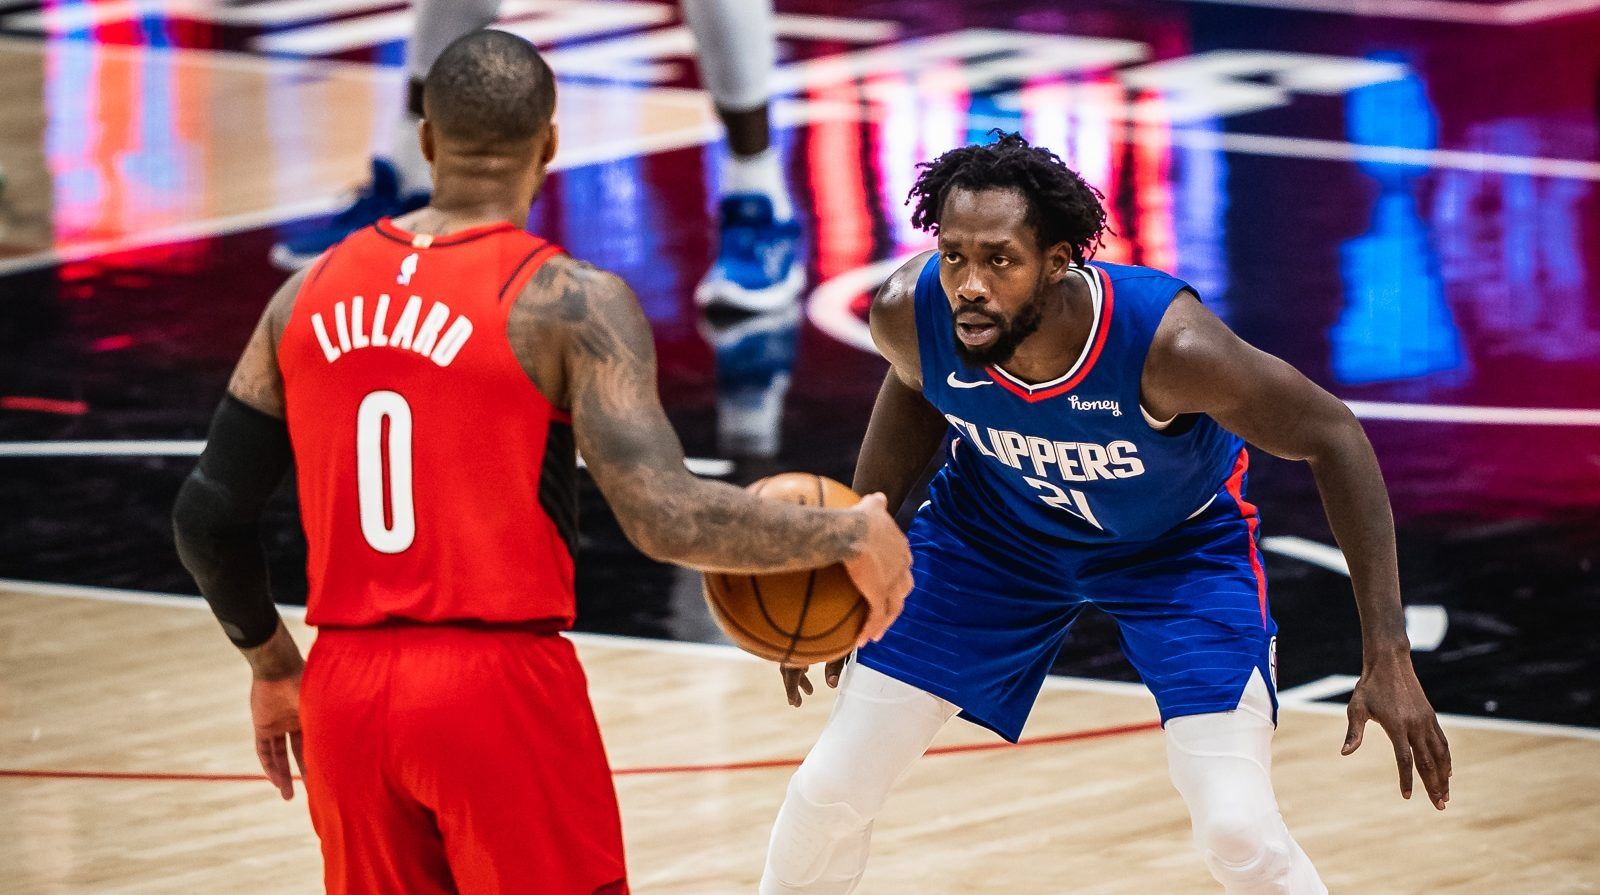 Clippers vs. Trail Blazers Preview: Facing a Familiar Foe